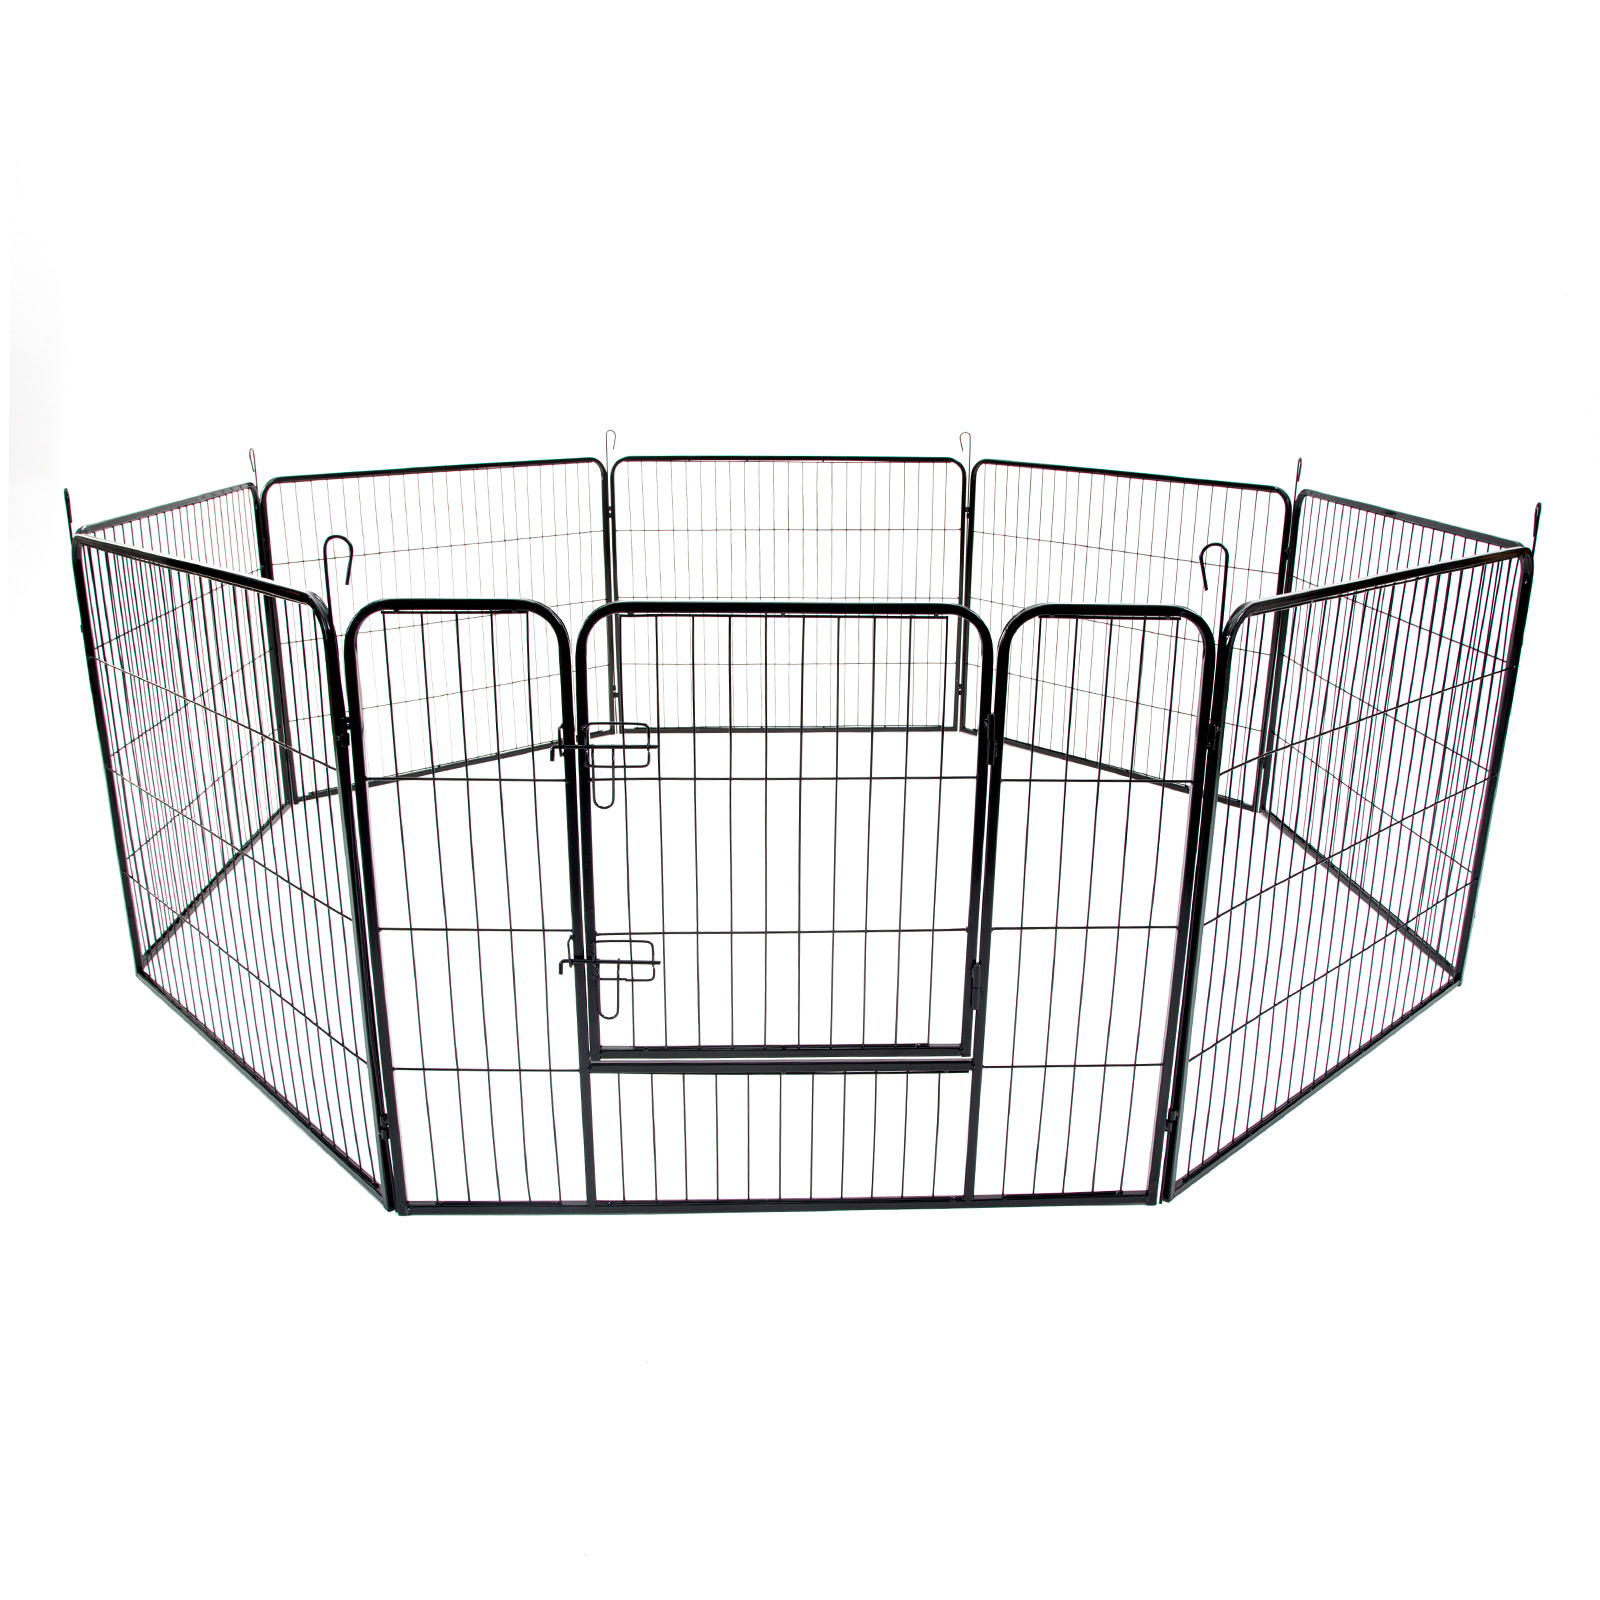 "40"" Heavy Duty 8 Panel Foldable Pet Playpen"